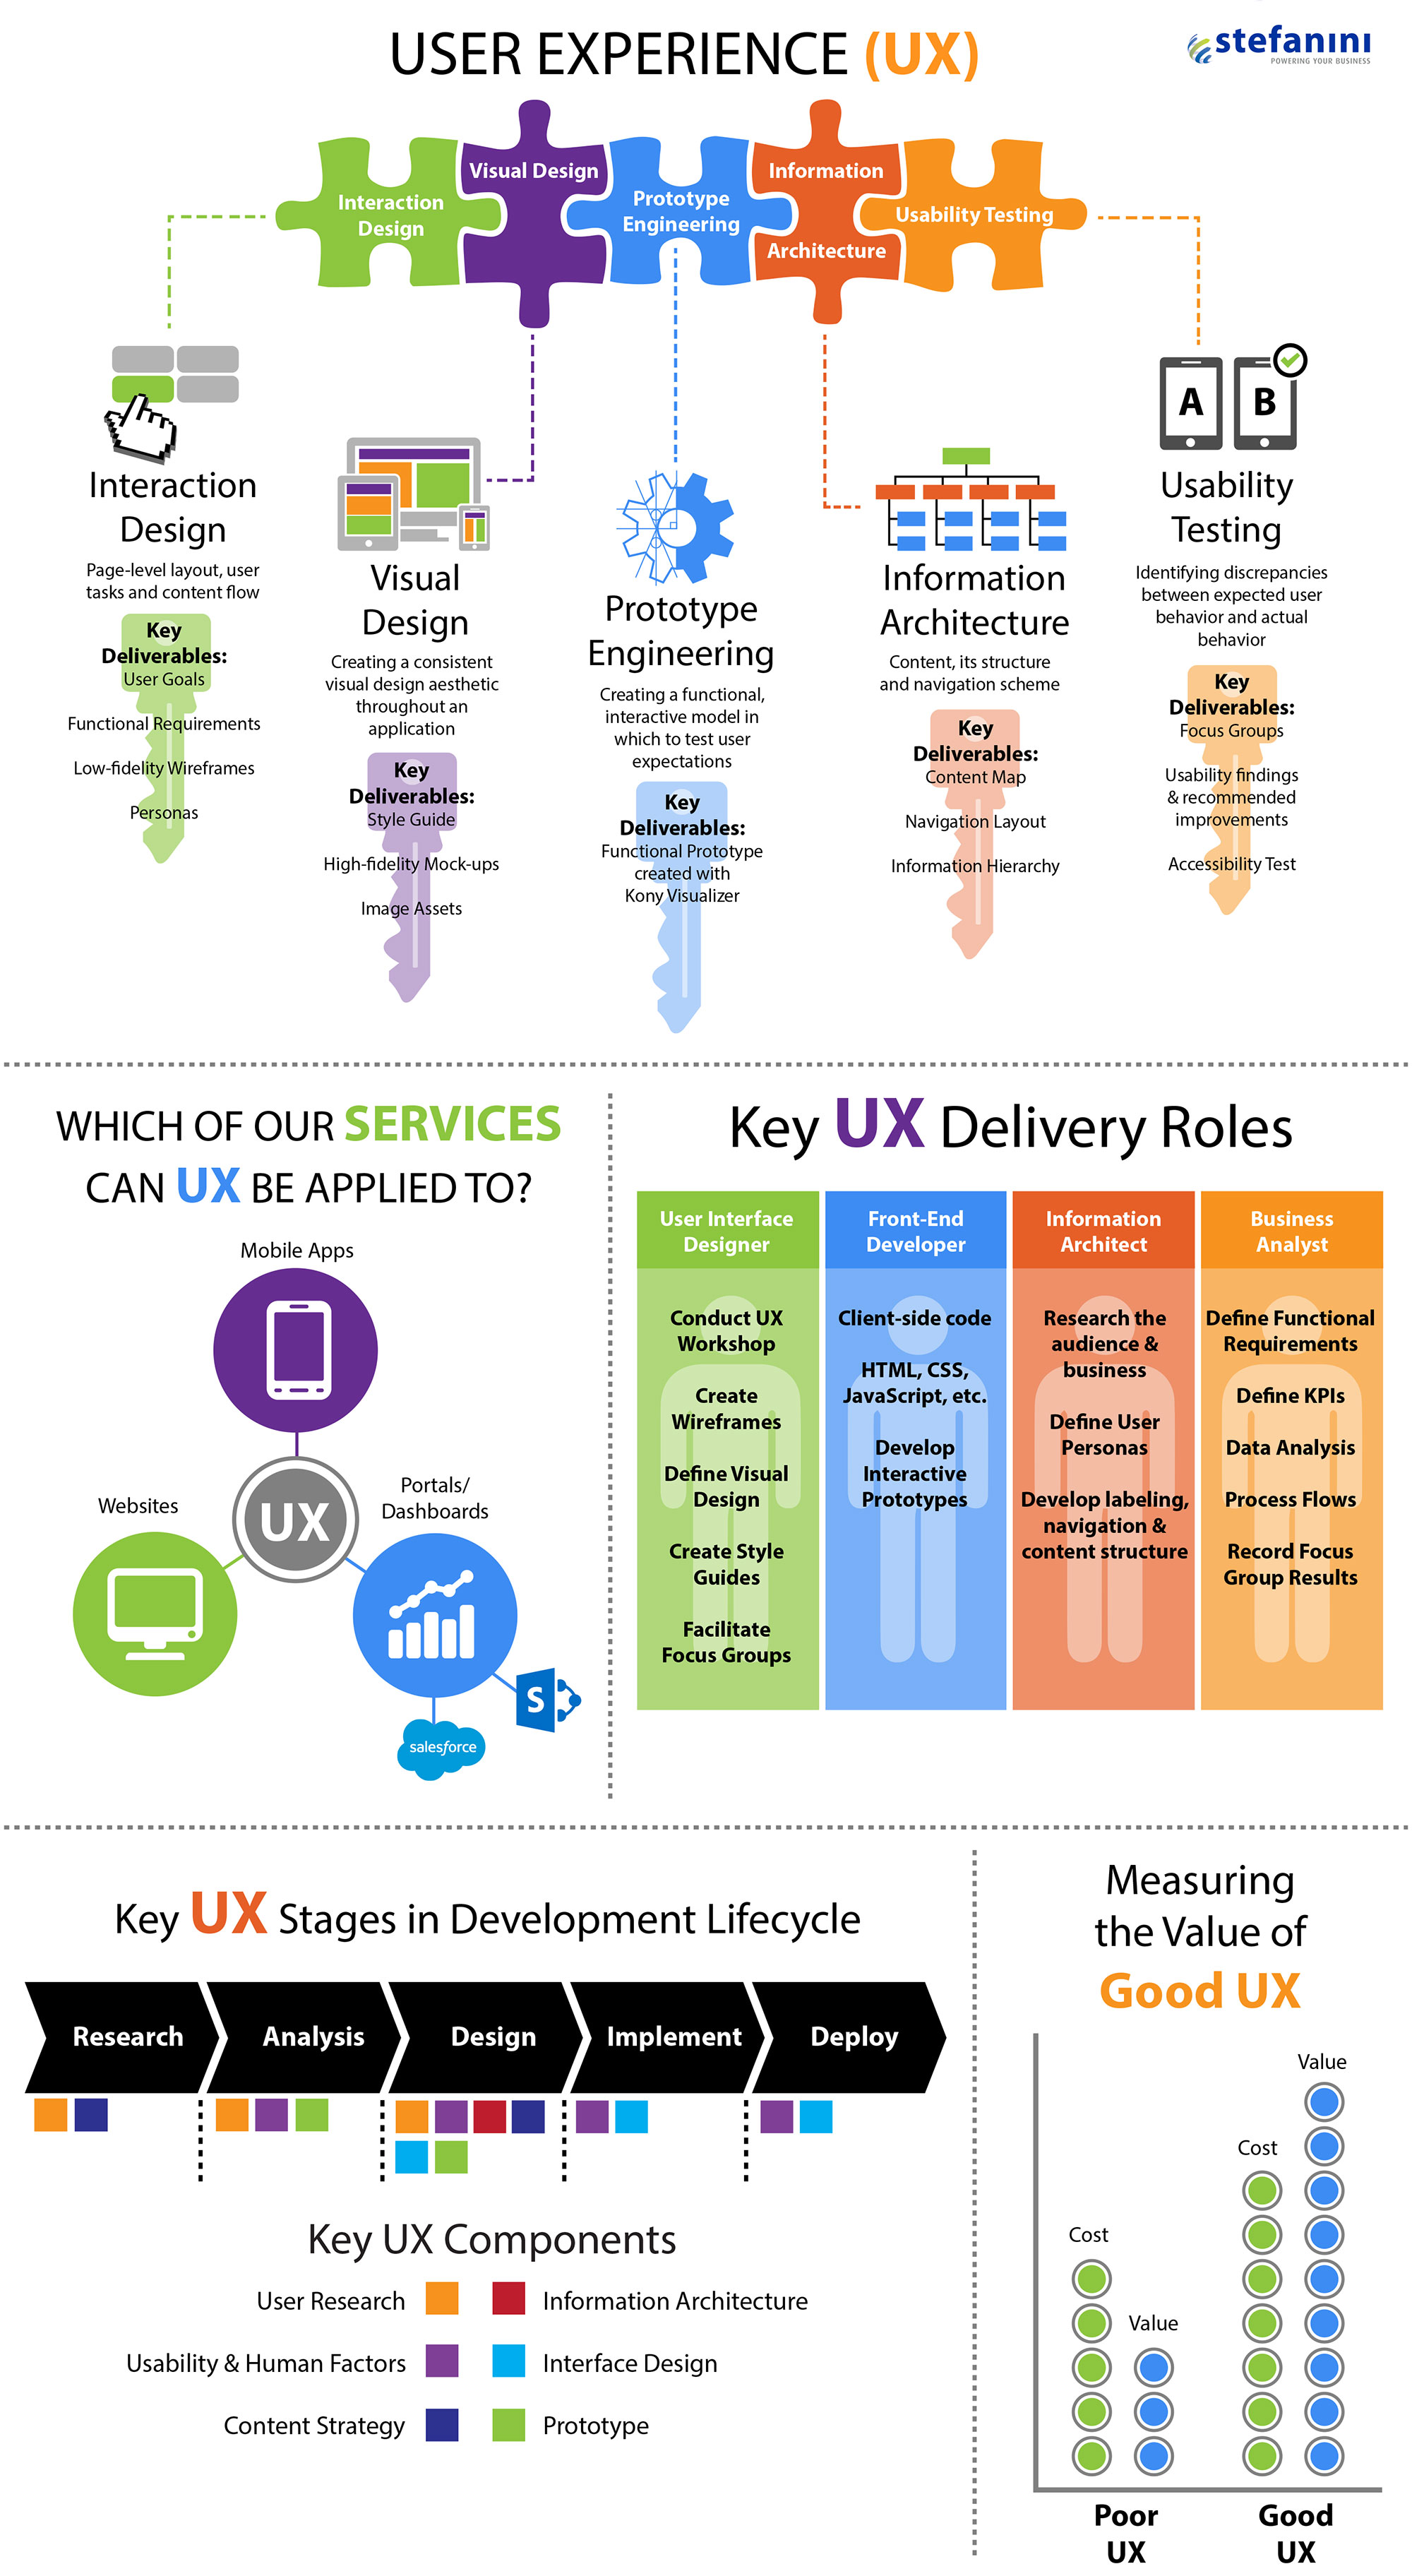 Stefanini, Inc - UX Infographic Design